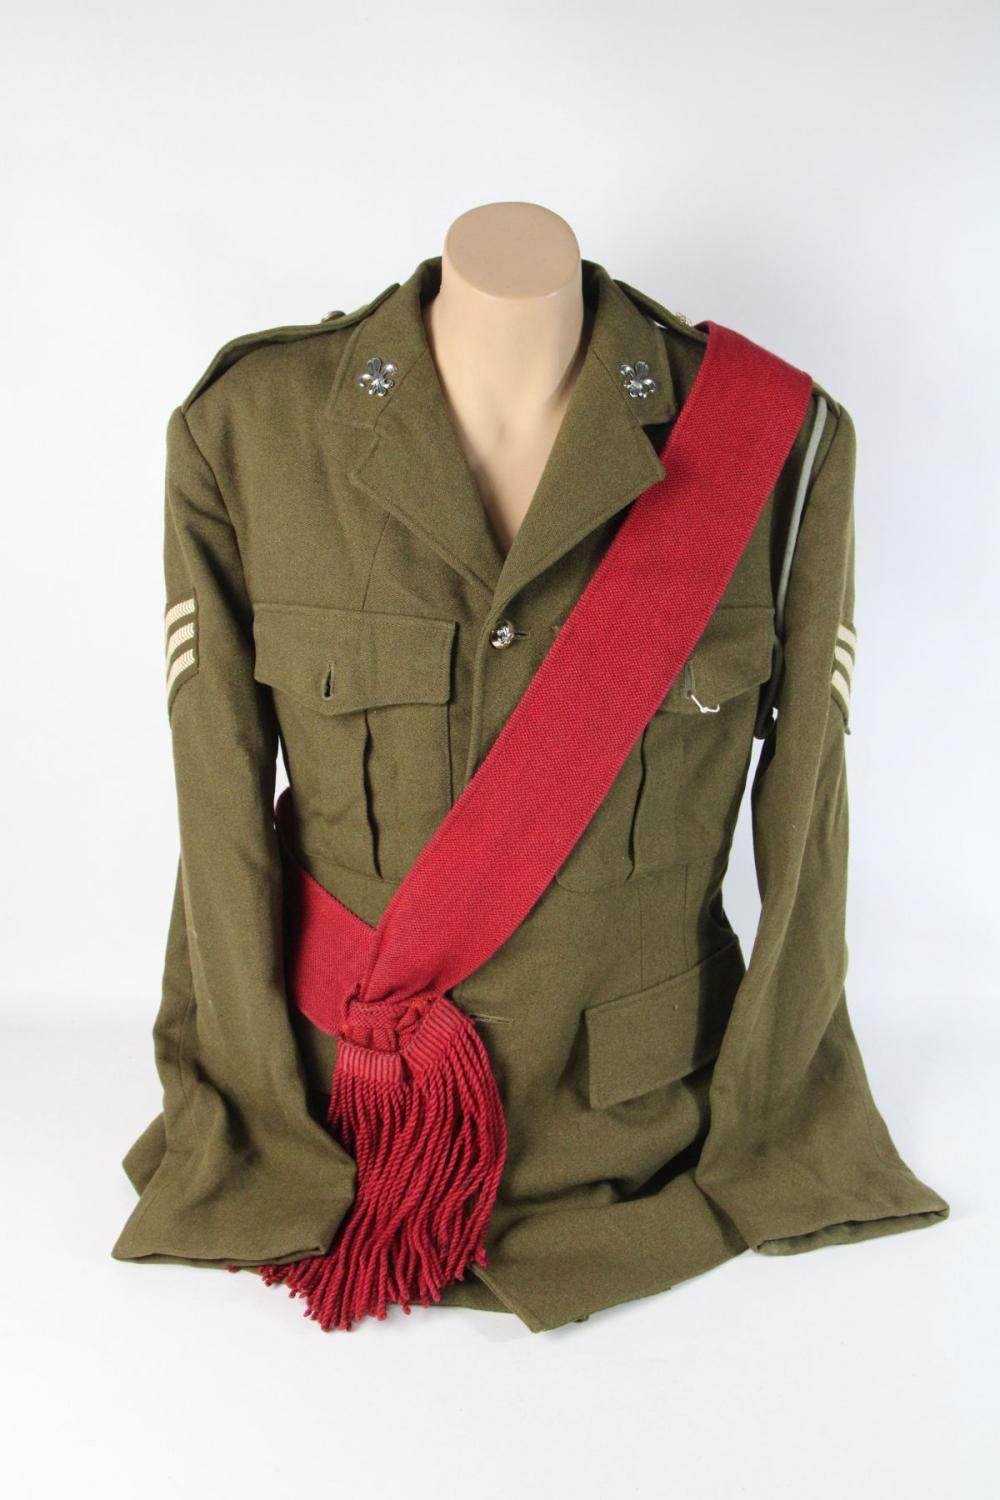 Lot 162: English Army Suit With Sash